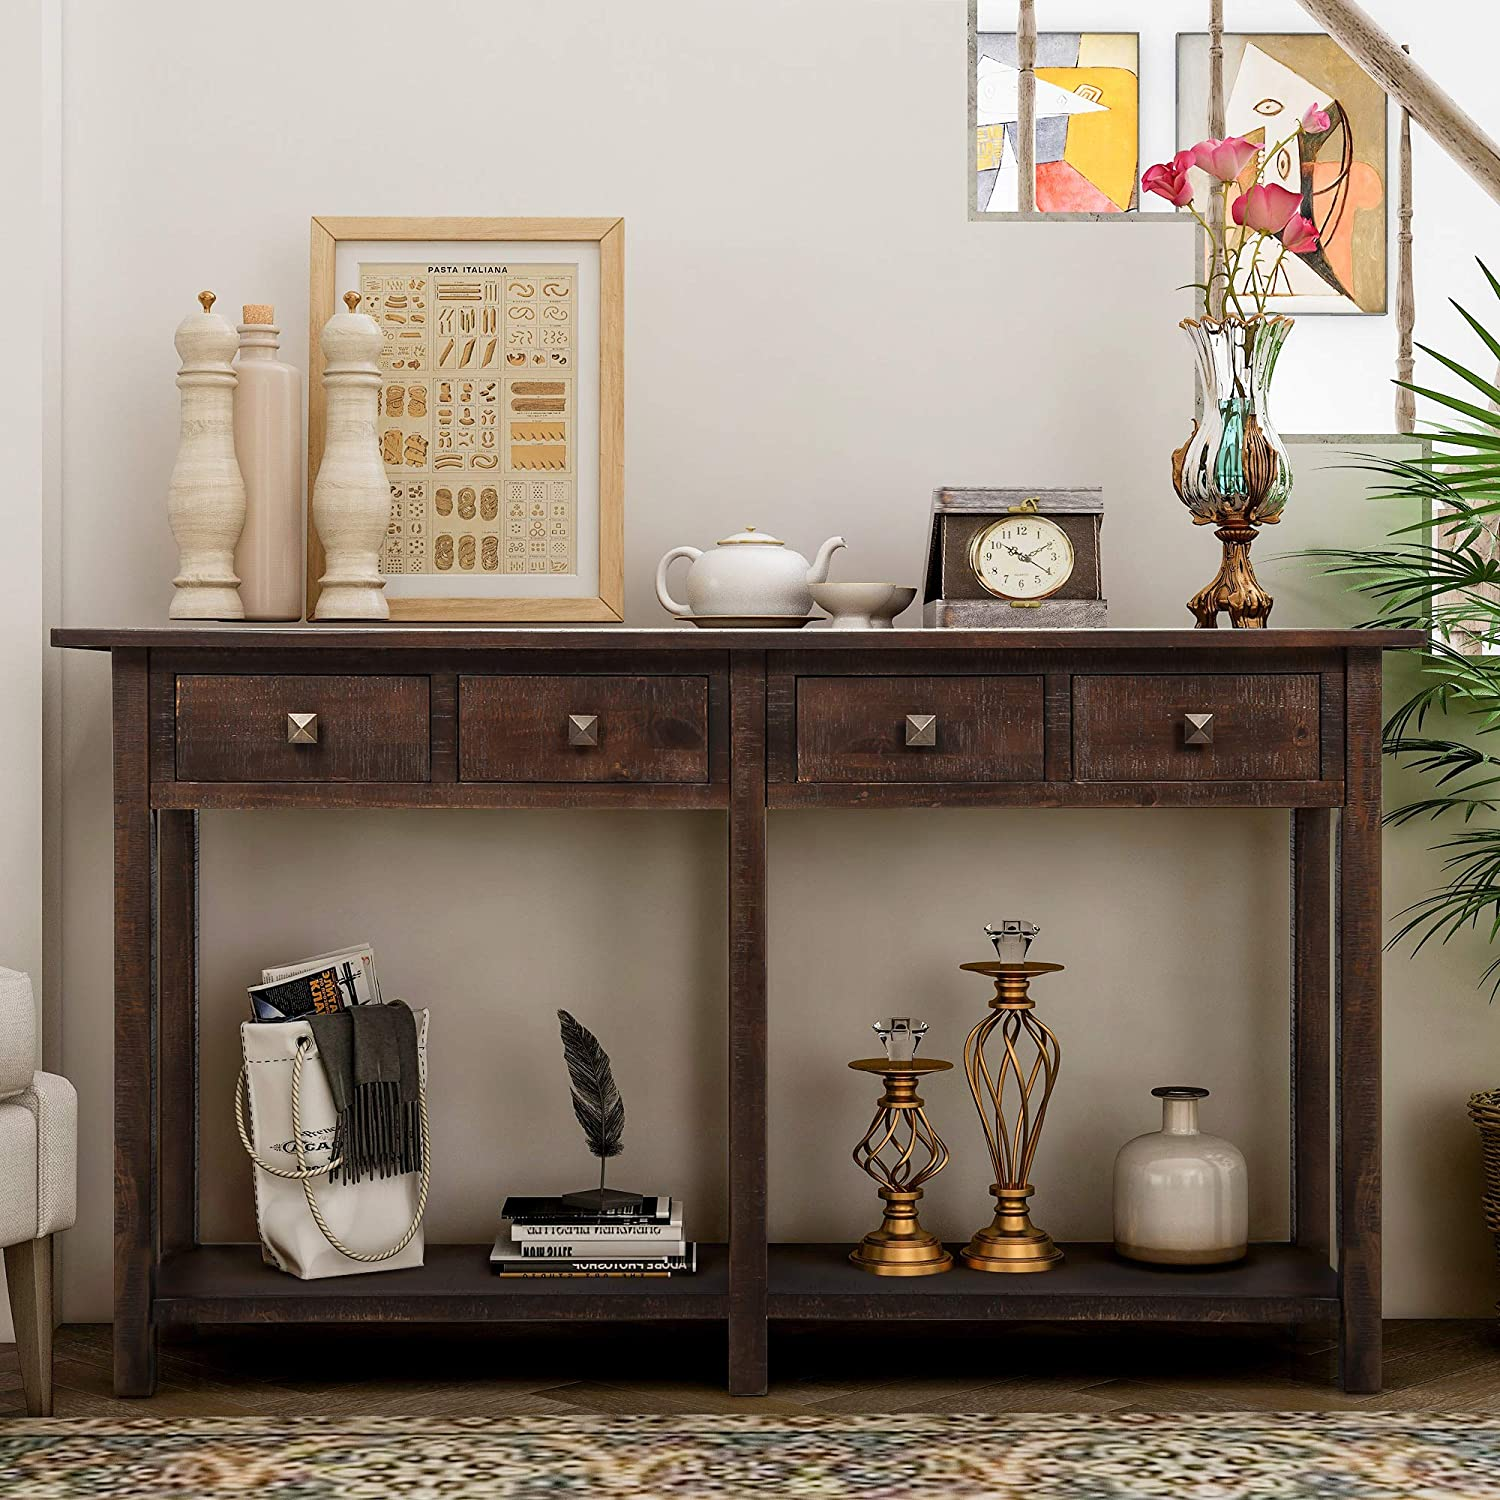 Rustic Brushed Texture Entryway Table with Storage Drawers, WeYoung Console Table with Drawers and Bottom Shelf for Living Room (Espresso)